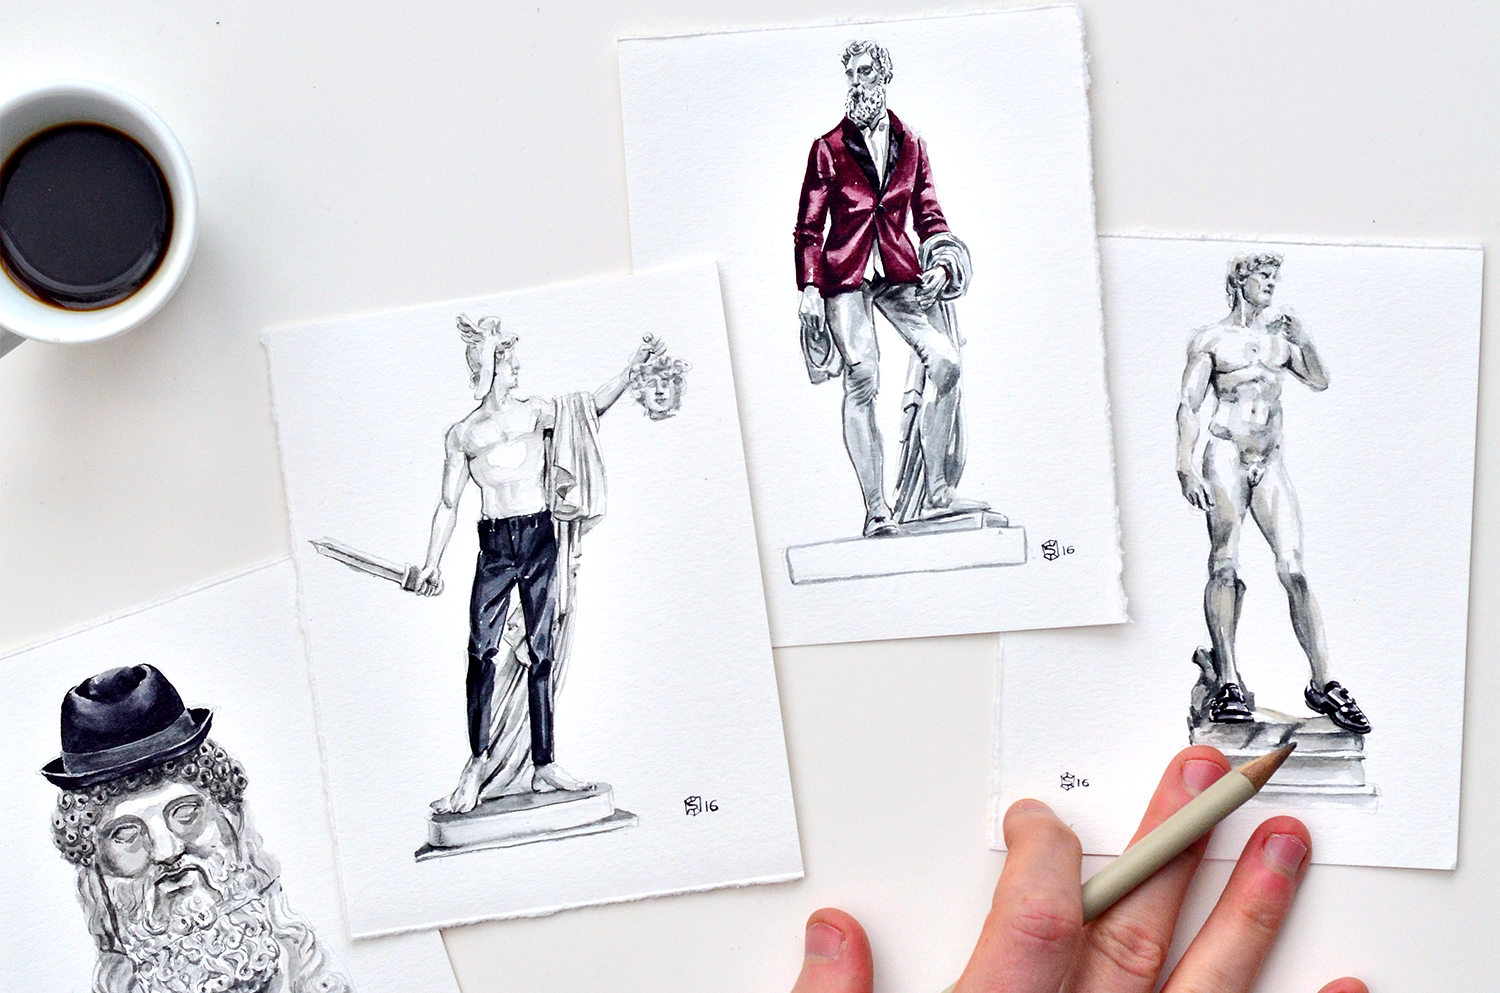 A layout of menswear illustrations that depict Italian sculptures wearing clothing items from Express Men